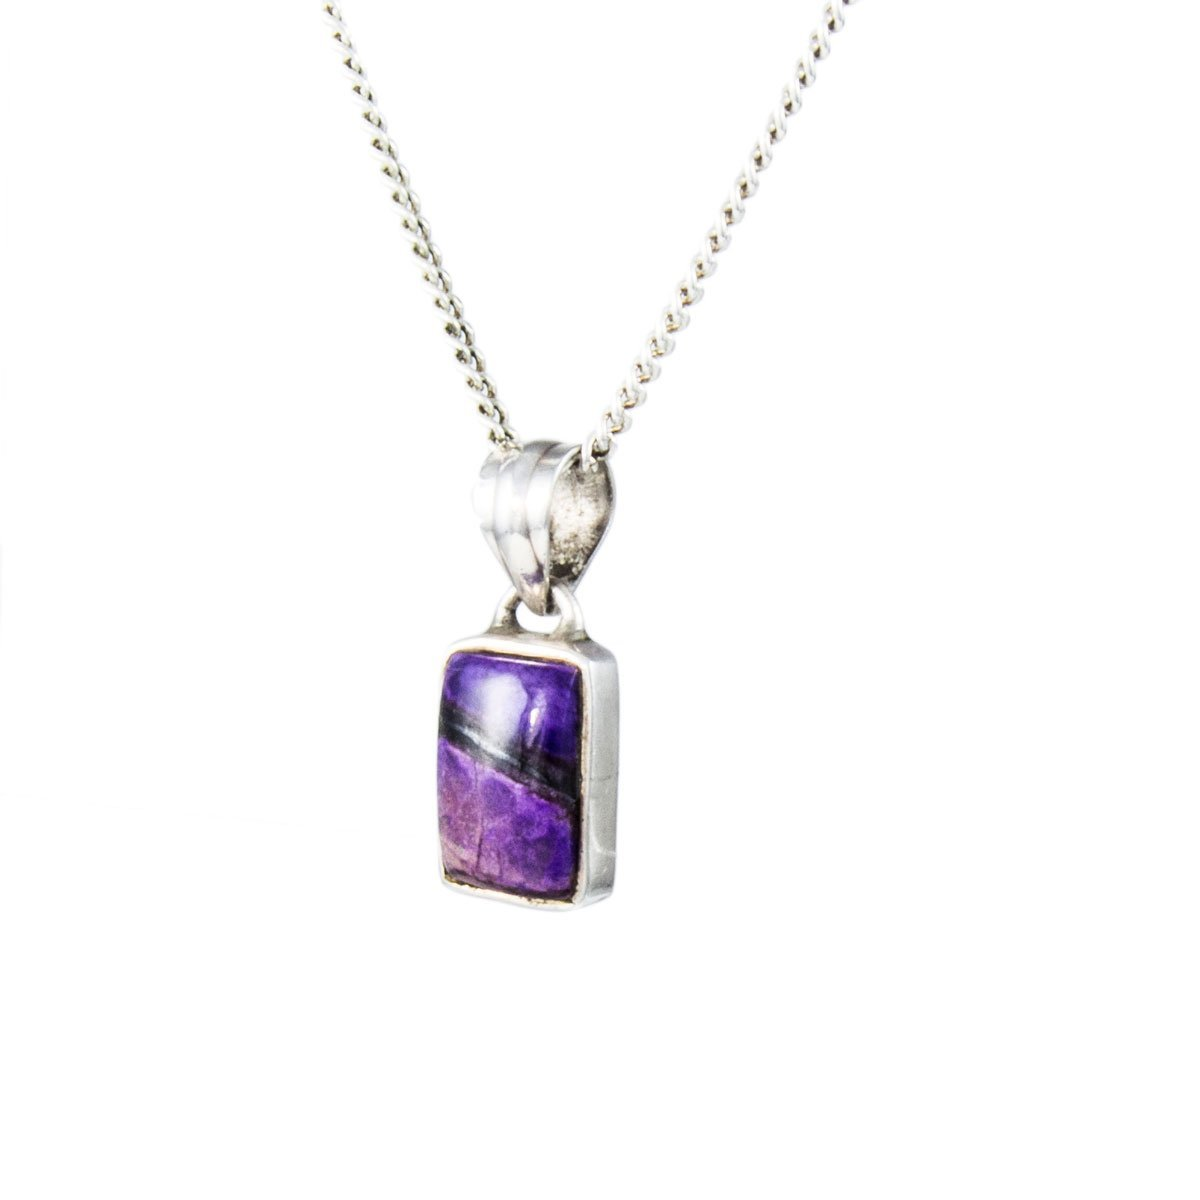 pendant gemstone shop sterling web sugilite jewelry on chain diffrient quality local regional x artists scott